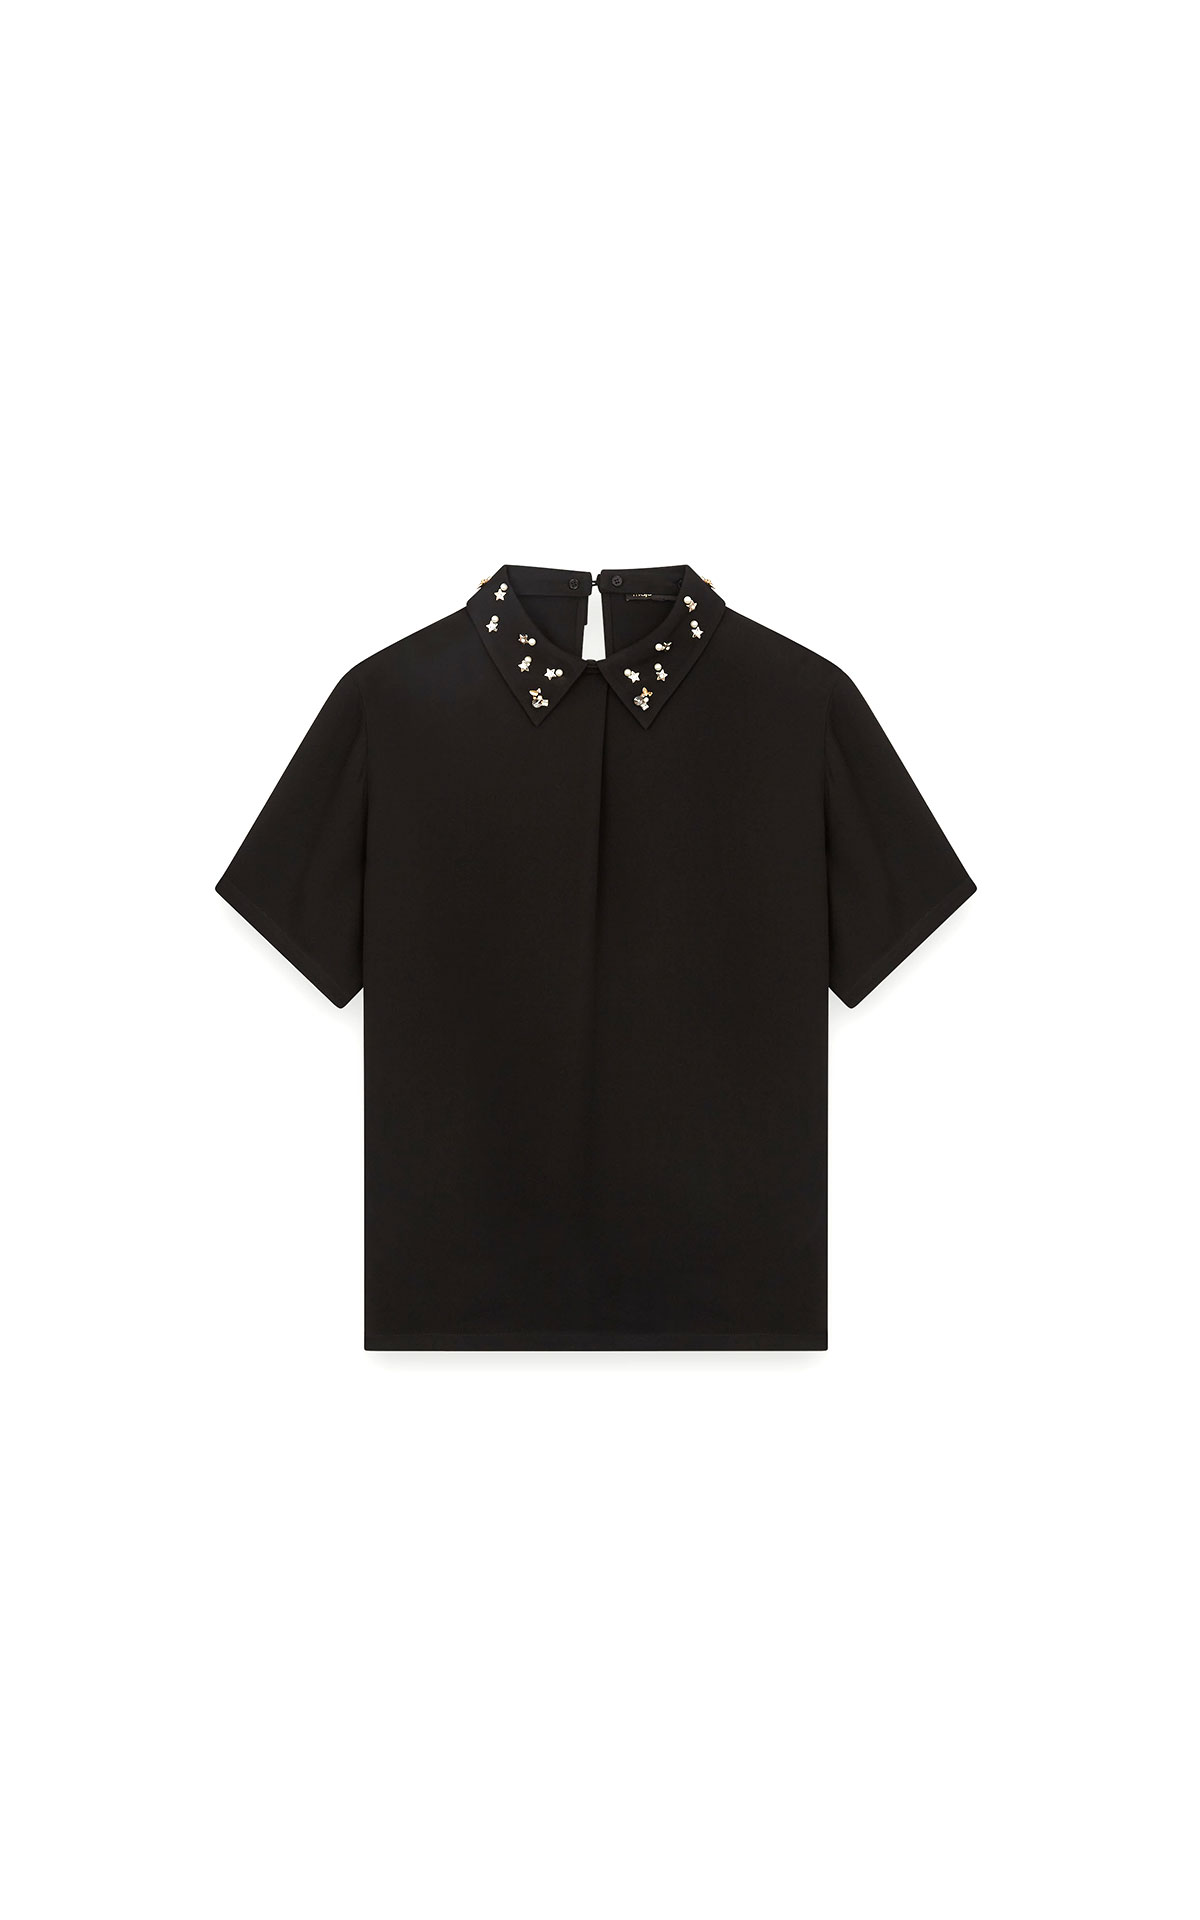 Maje T-shirt top with embroidered collar at The Bicester Village Shopping Collection